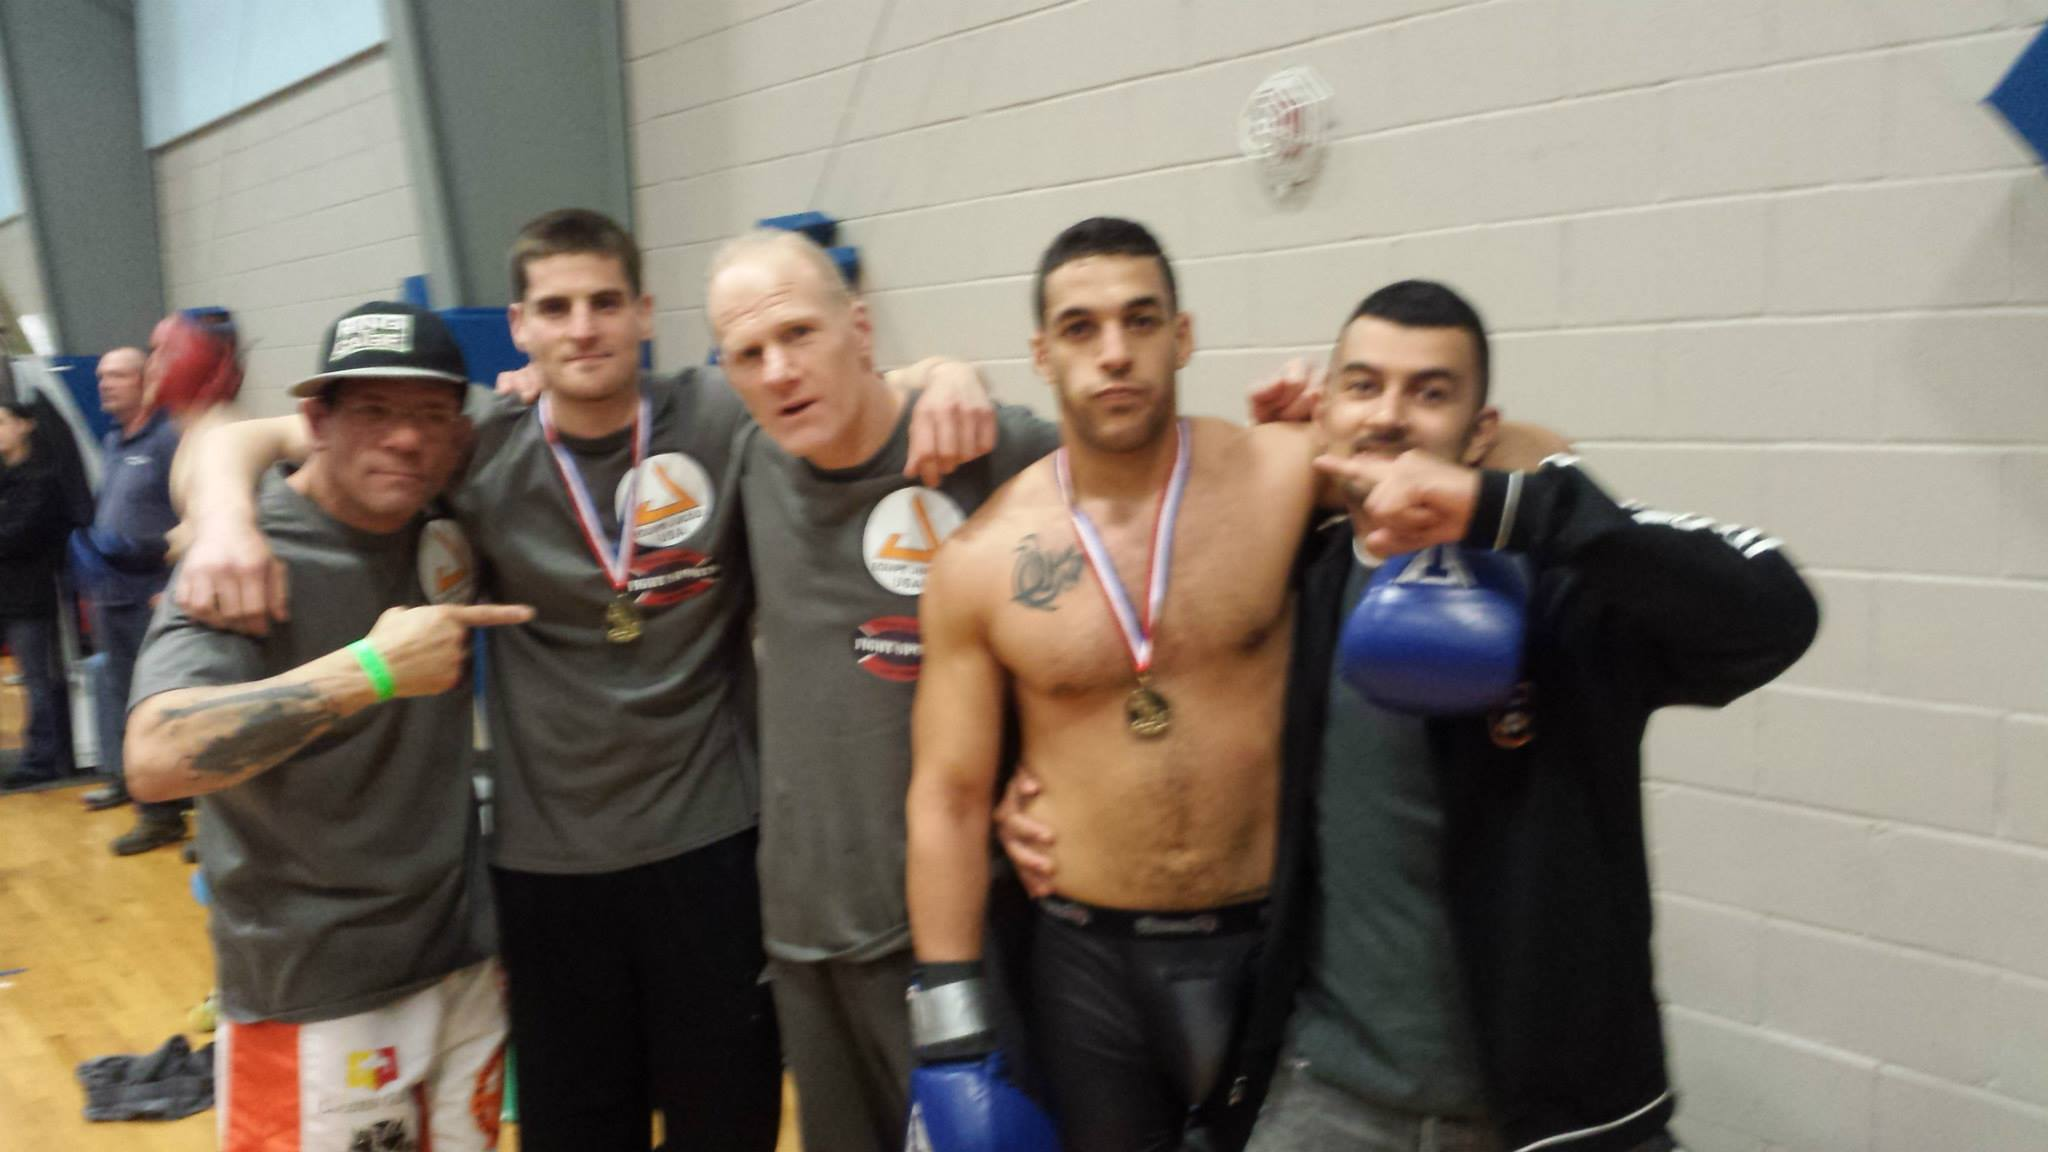 Muay Thai NJ - Fight and Fitness MMA Wins!